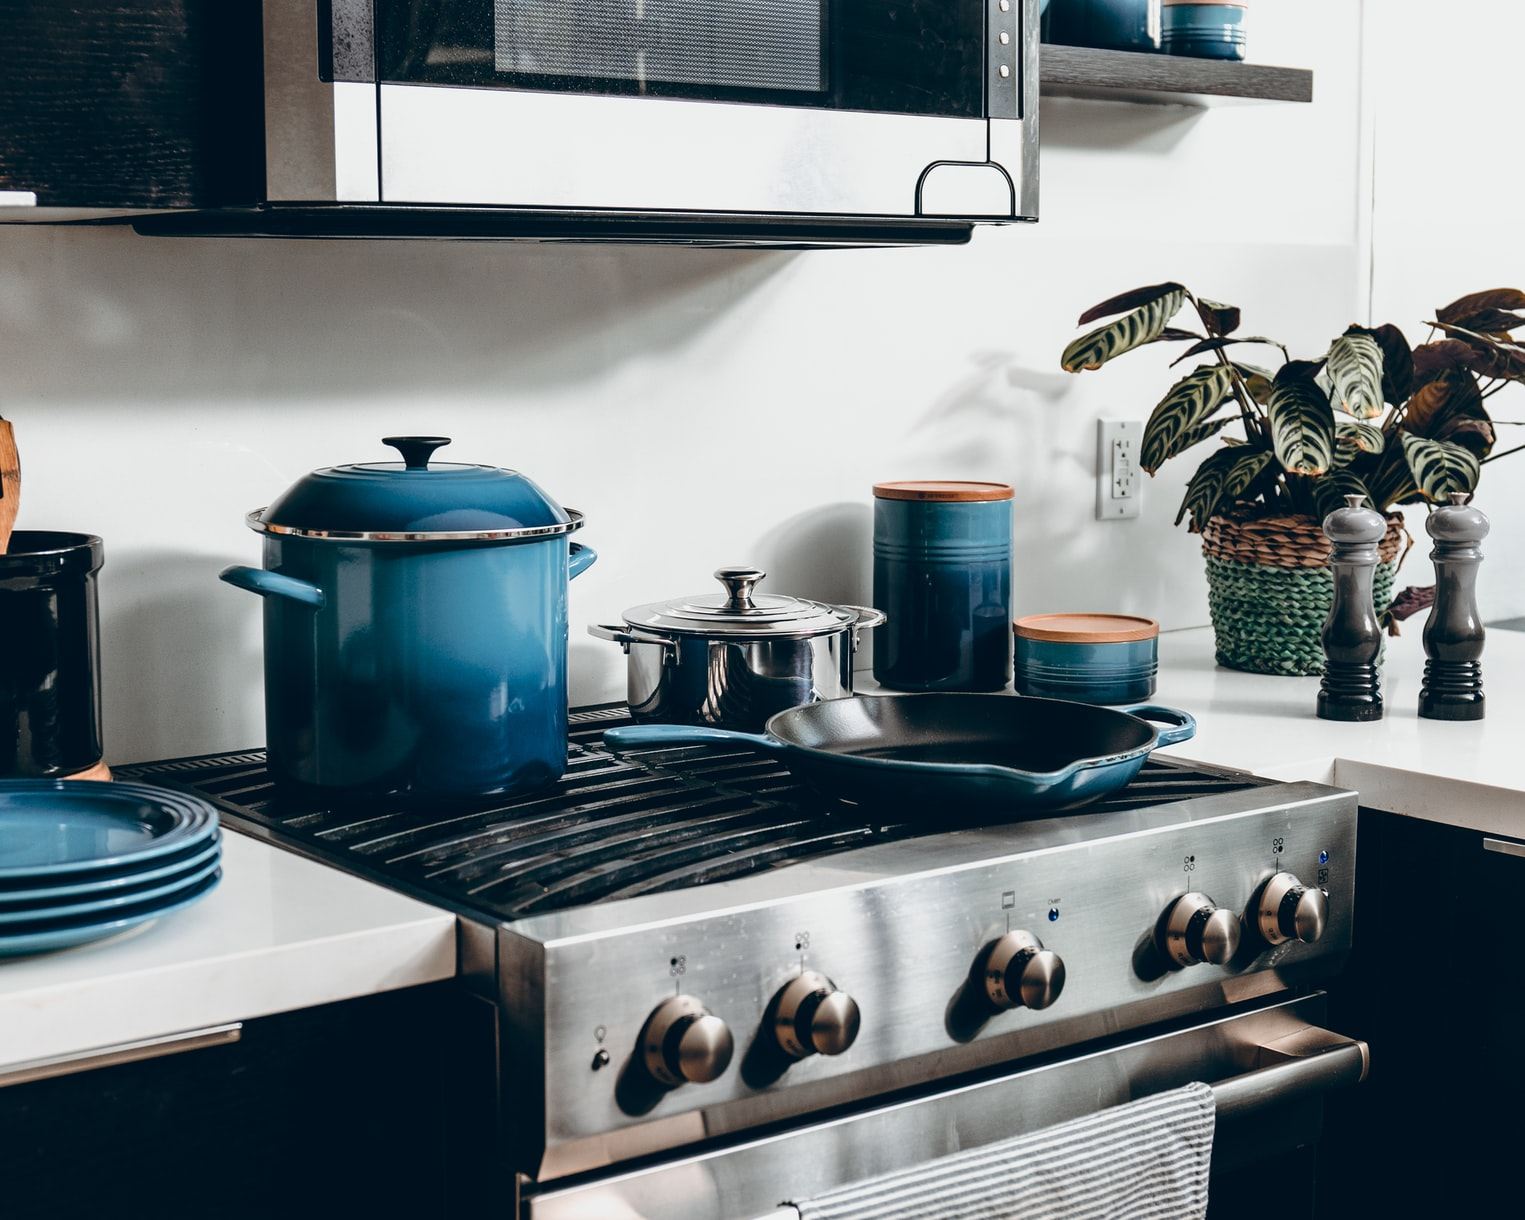 can you get carbon monoxide poisoning from an electric stove